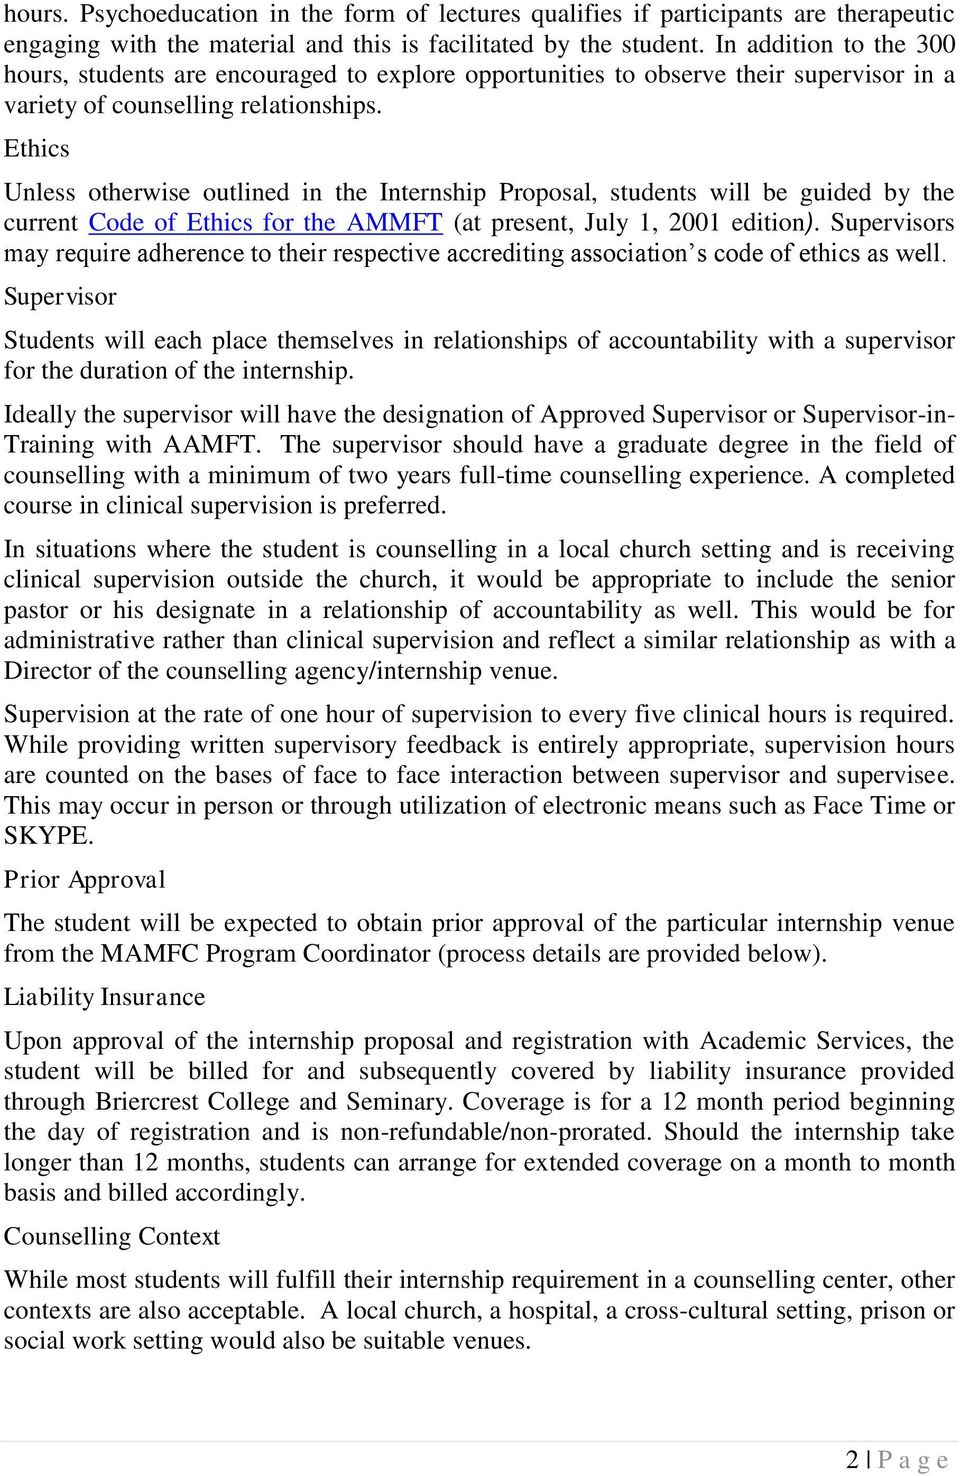 Ethics Unless otherwise outlined in the Internship Proposal, students will be guided by the current Code of Ethics for the AMMFT (at present, July 1, 2001 edition).